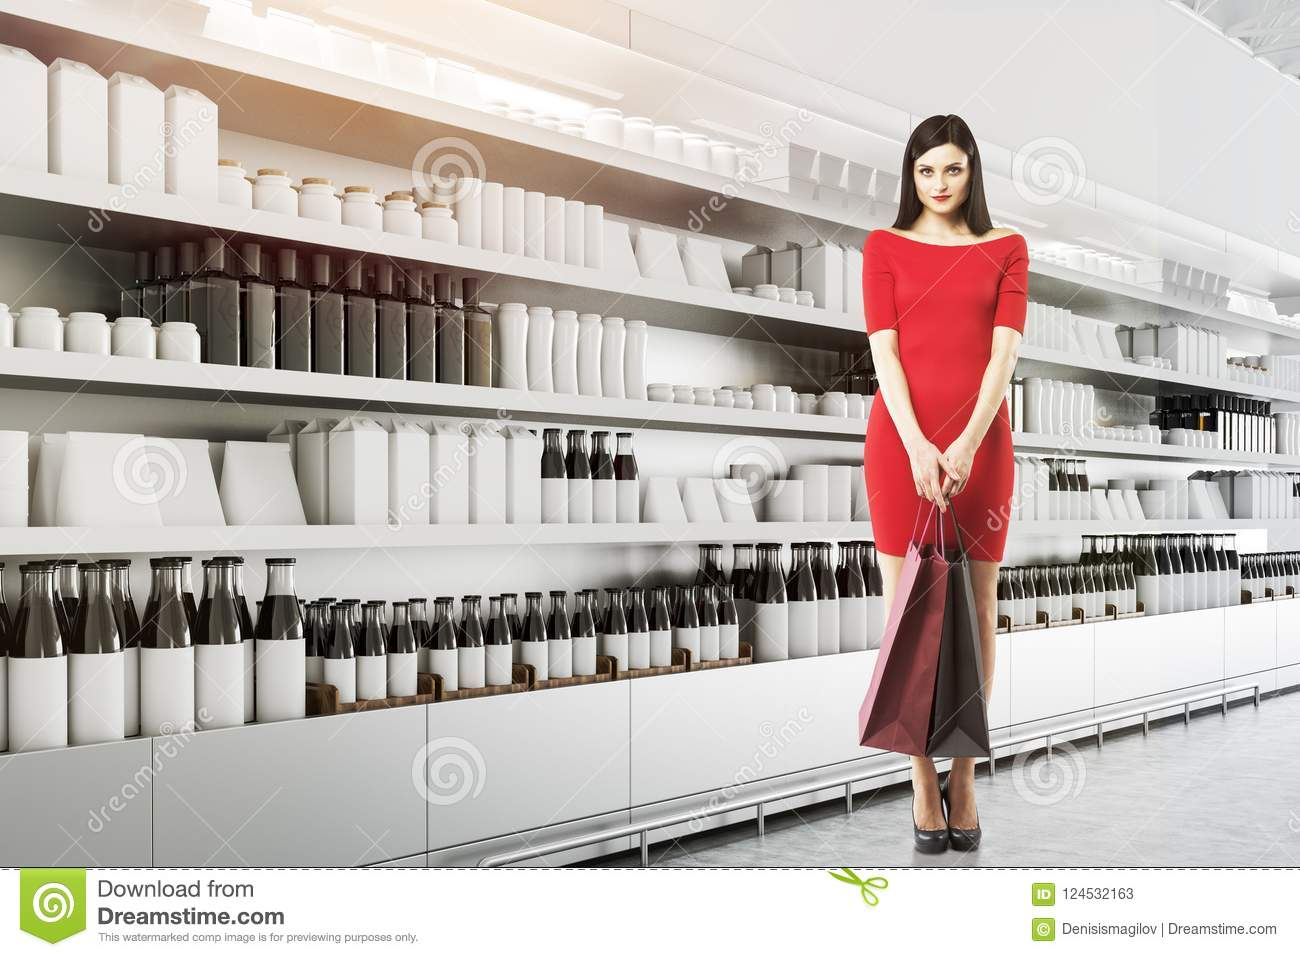 Supermarket Shelves With Mock Up Goods, Woman Stock